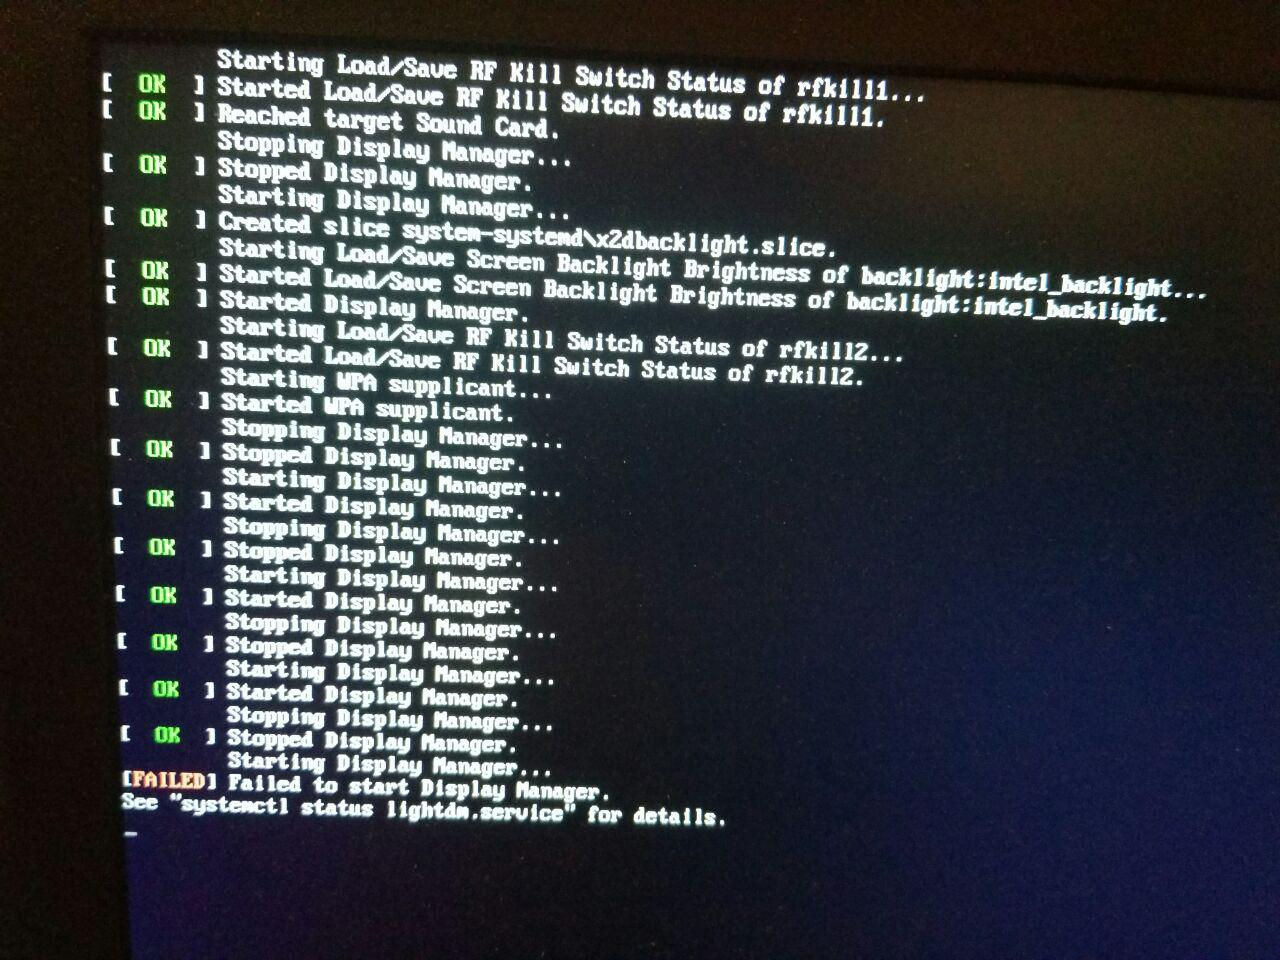 ⚓ T3330 Lightdm failed at boot after installing nvidia driver